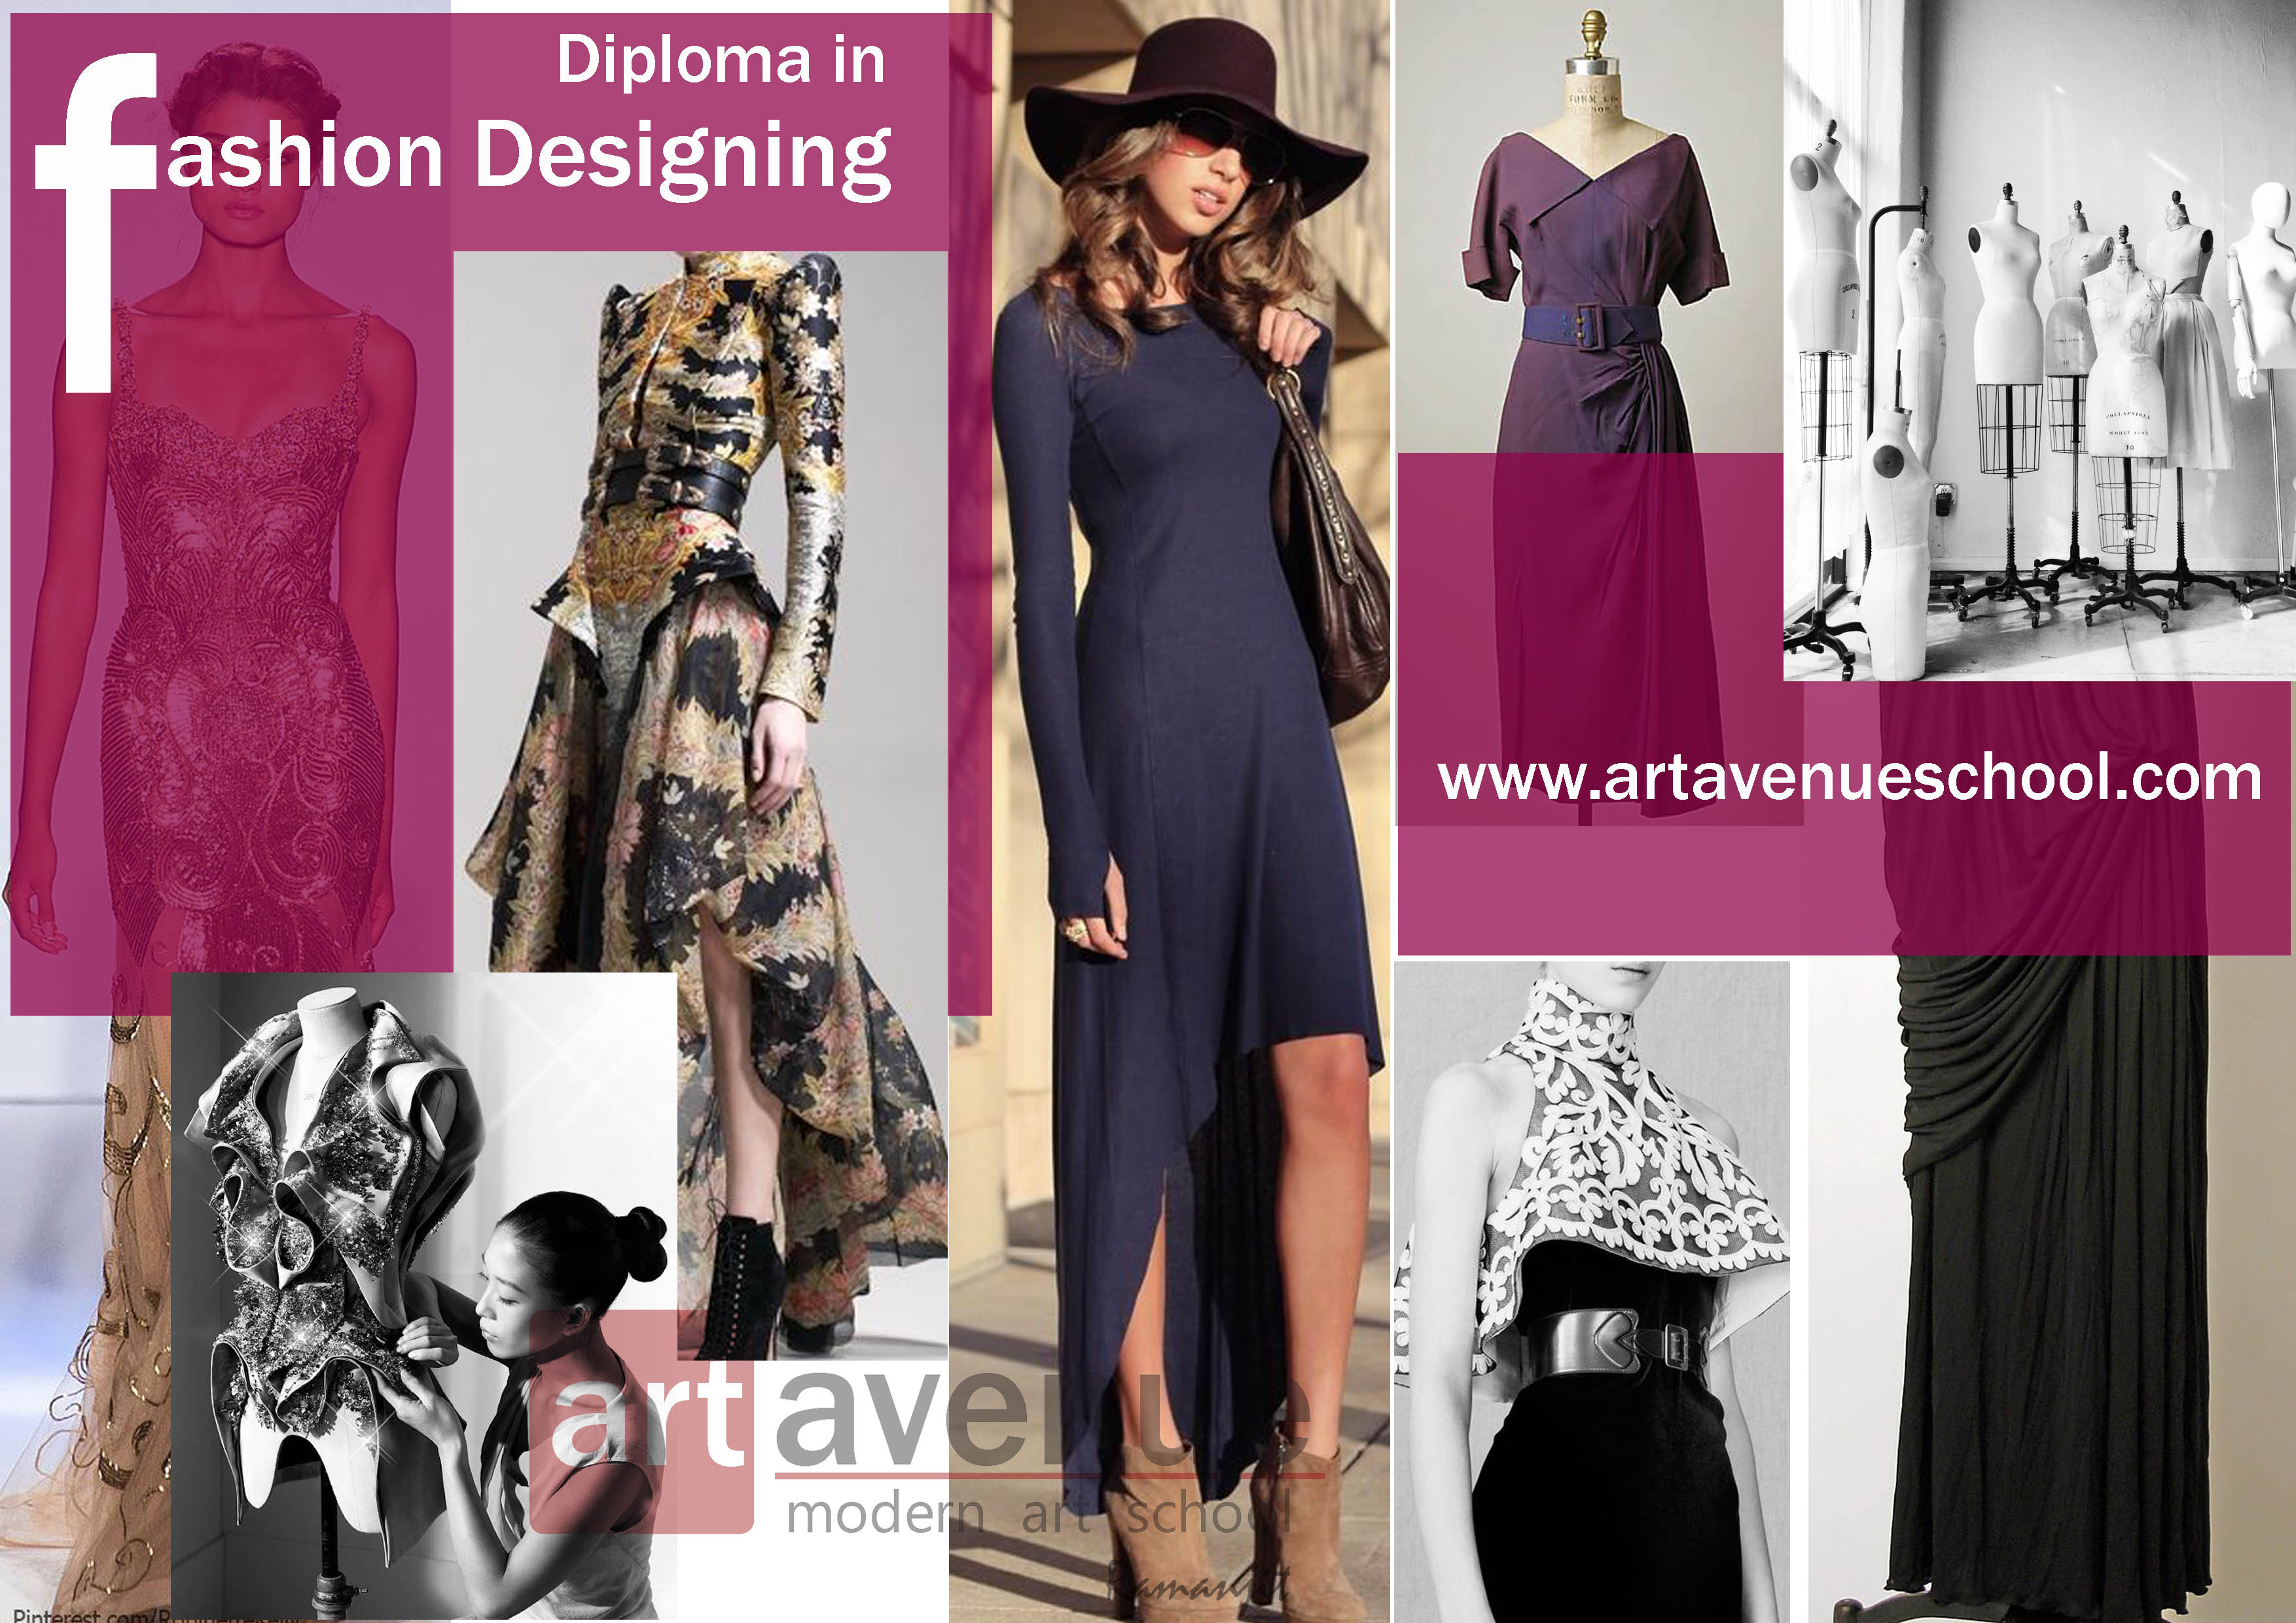 http://www.artavenueschool.com/ Make your carrier in design field , Join us today for designing courses  Art Avenue school Providing course of Diploma in Fashion Designing , Diploma In Interior Designing .